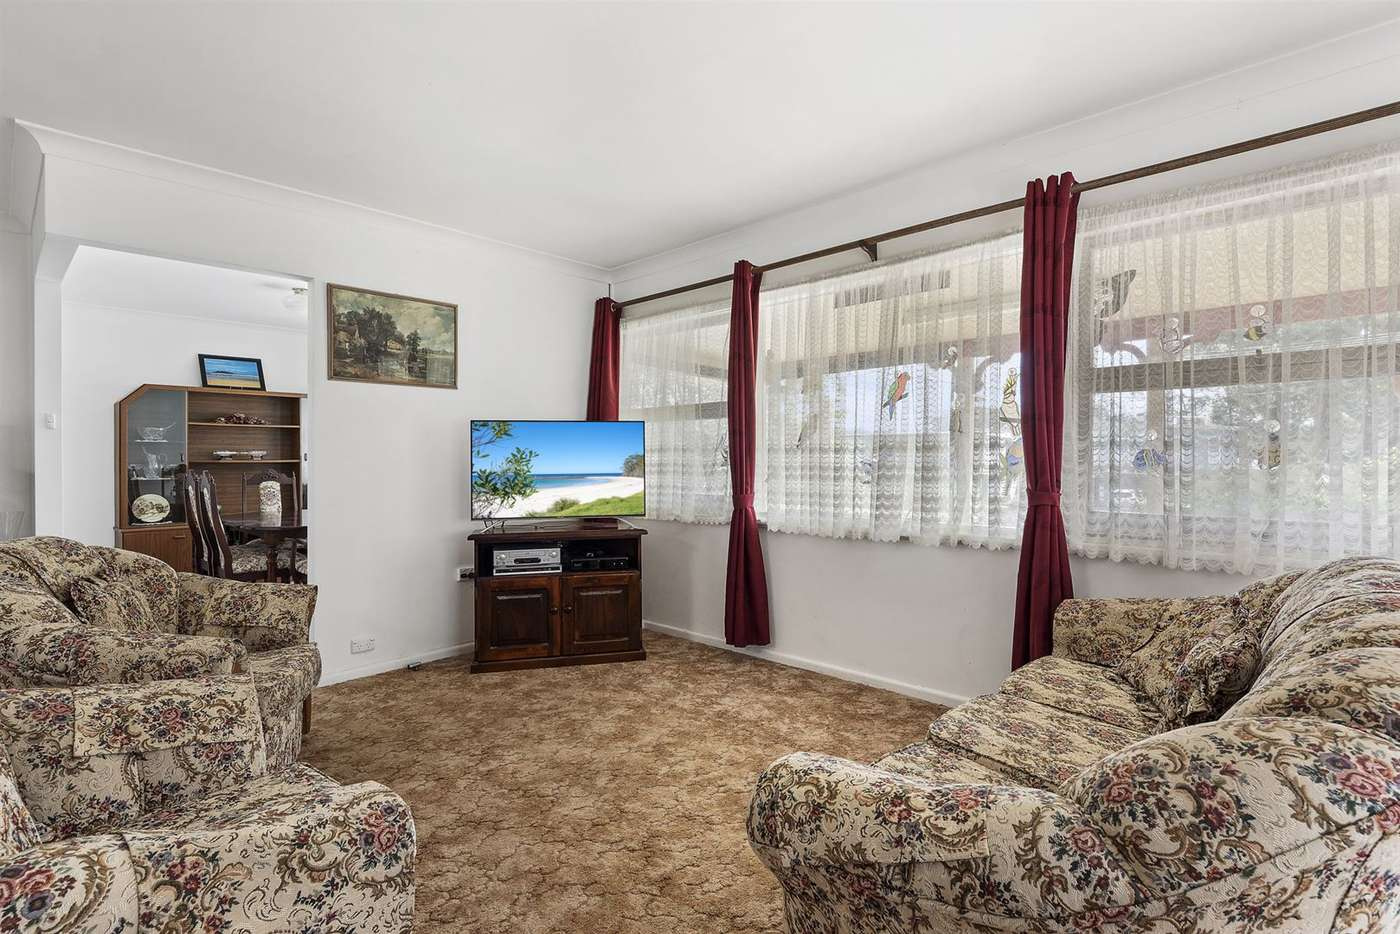 Fifth view of Homely house listing, 8 Lake Conjola Entrance Road, Lake Conjola NSW 2539